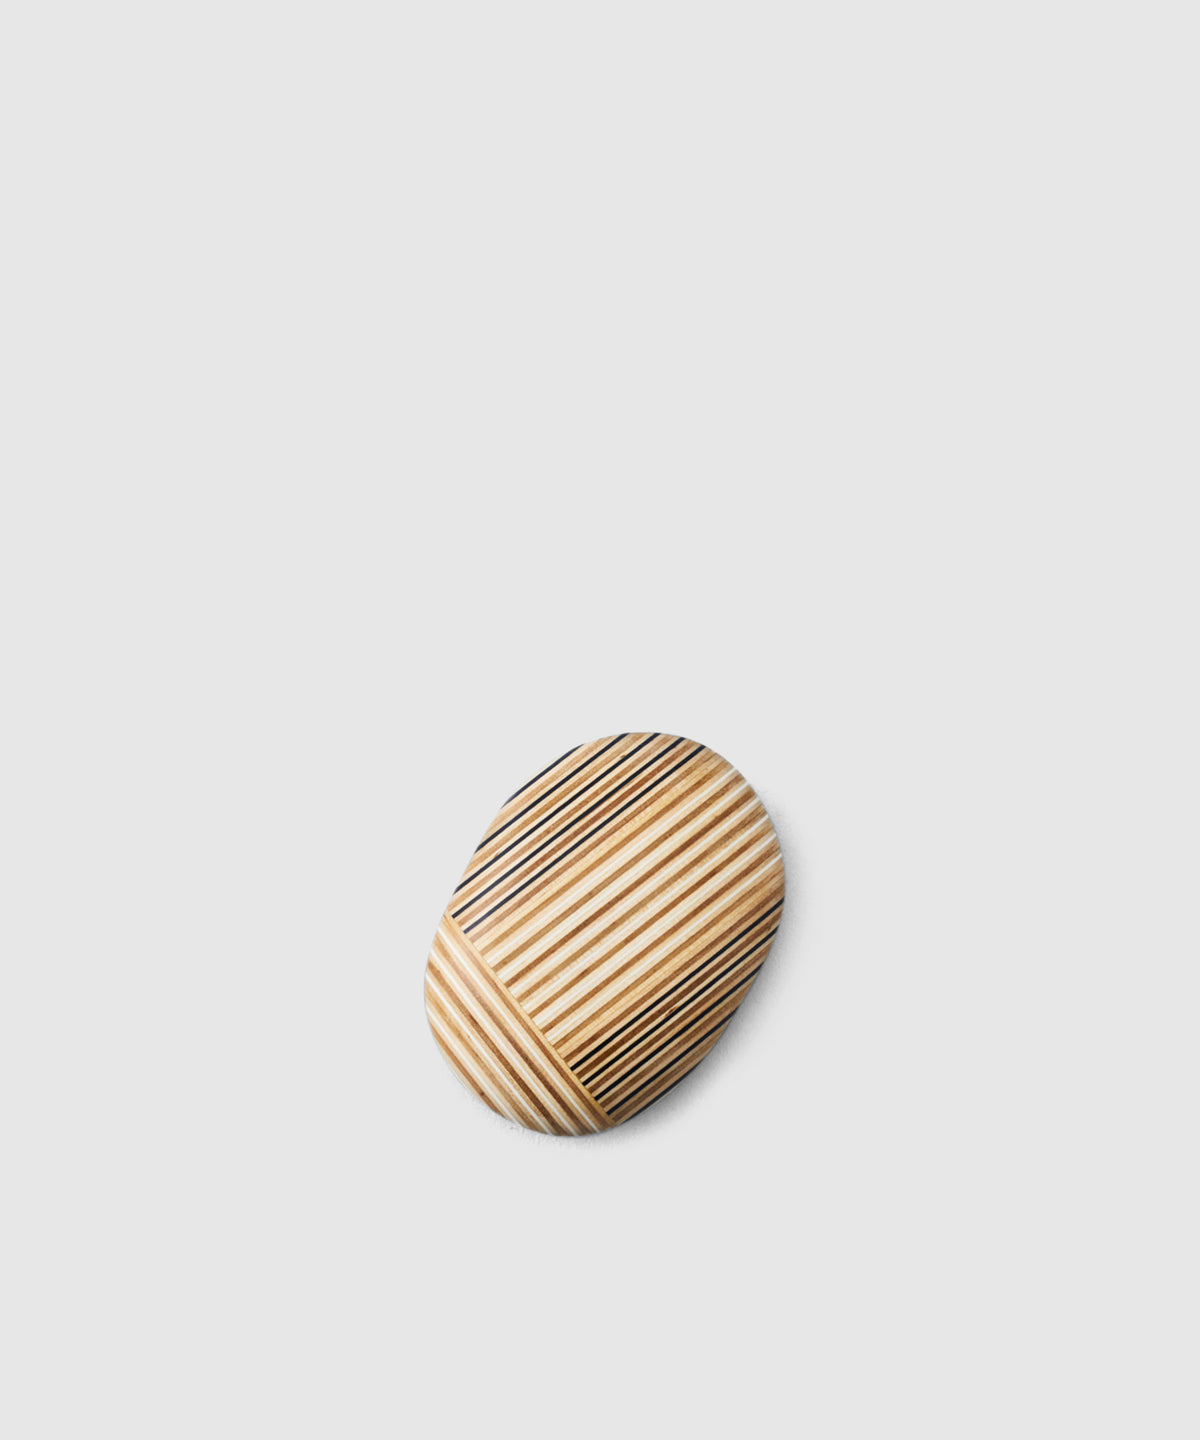 Patchwork Wooden Paperweight